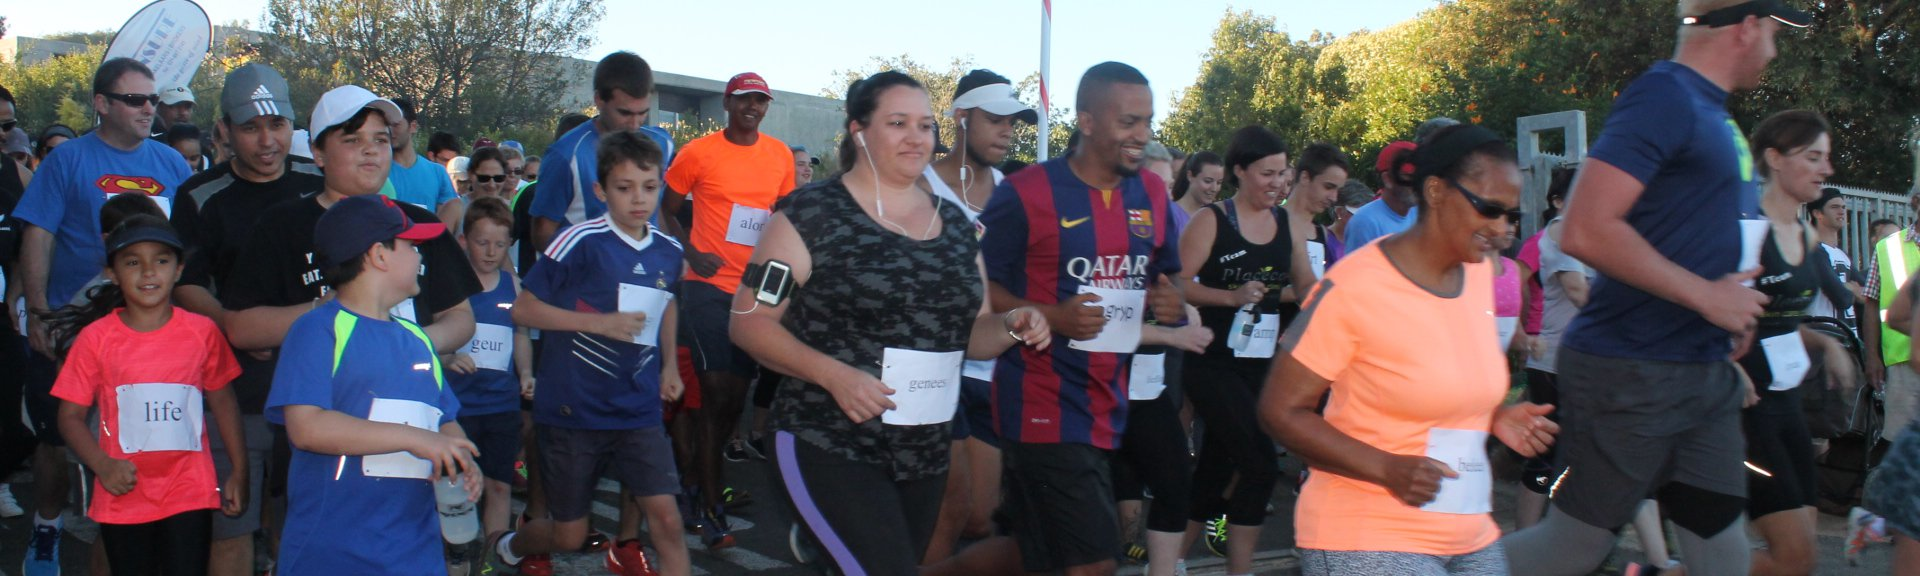 Fun Run in aid of children with autism | Paarl | Things to do With Kids